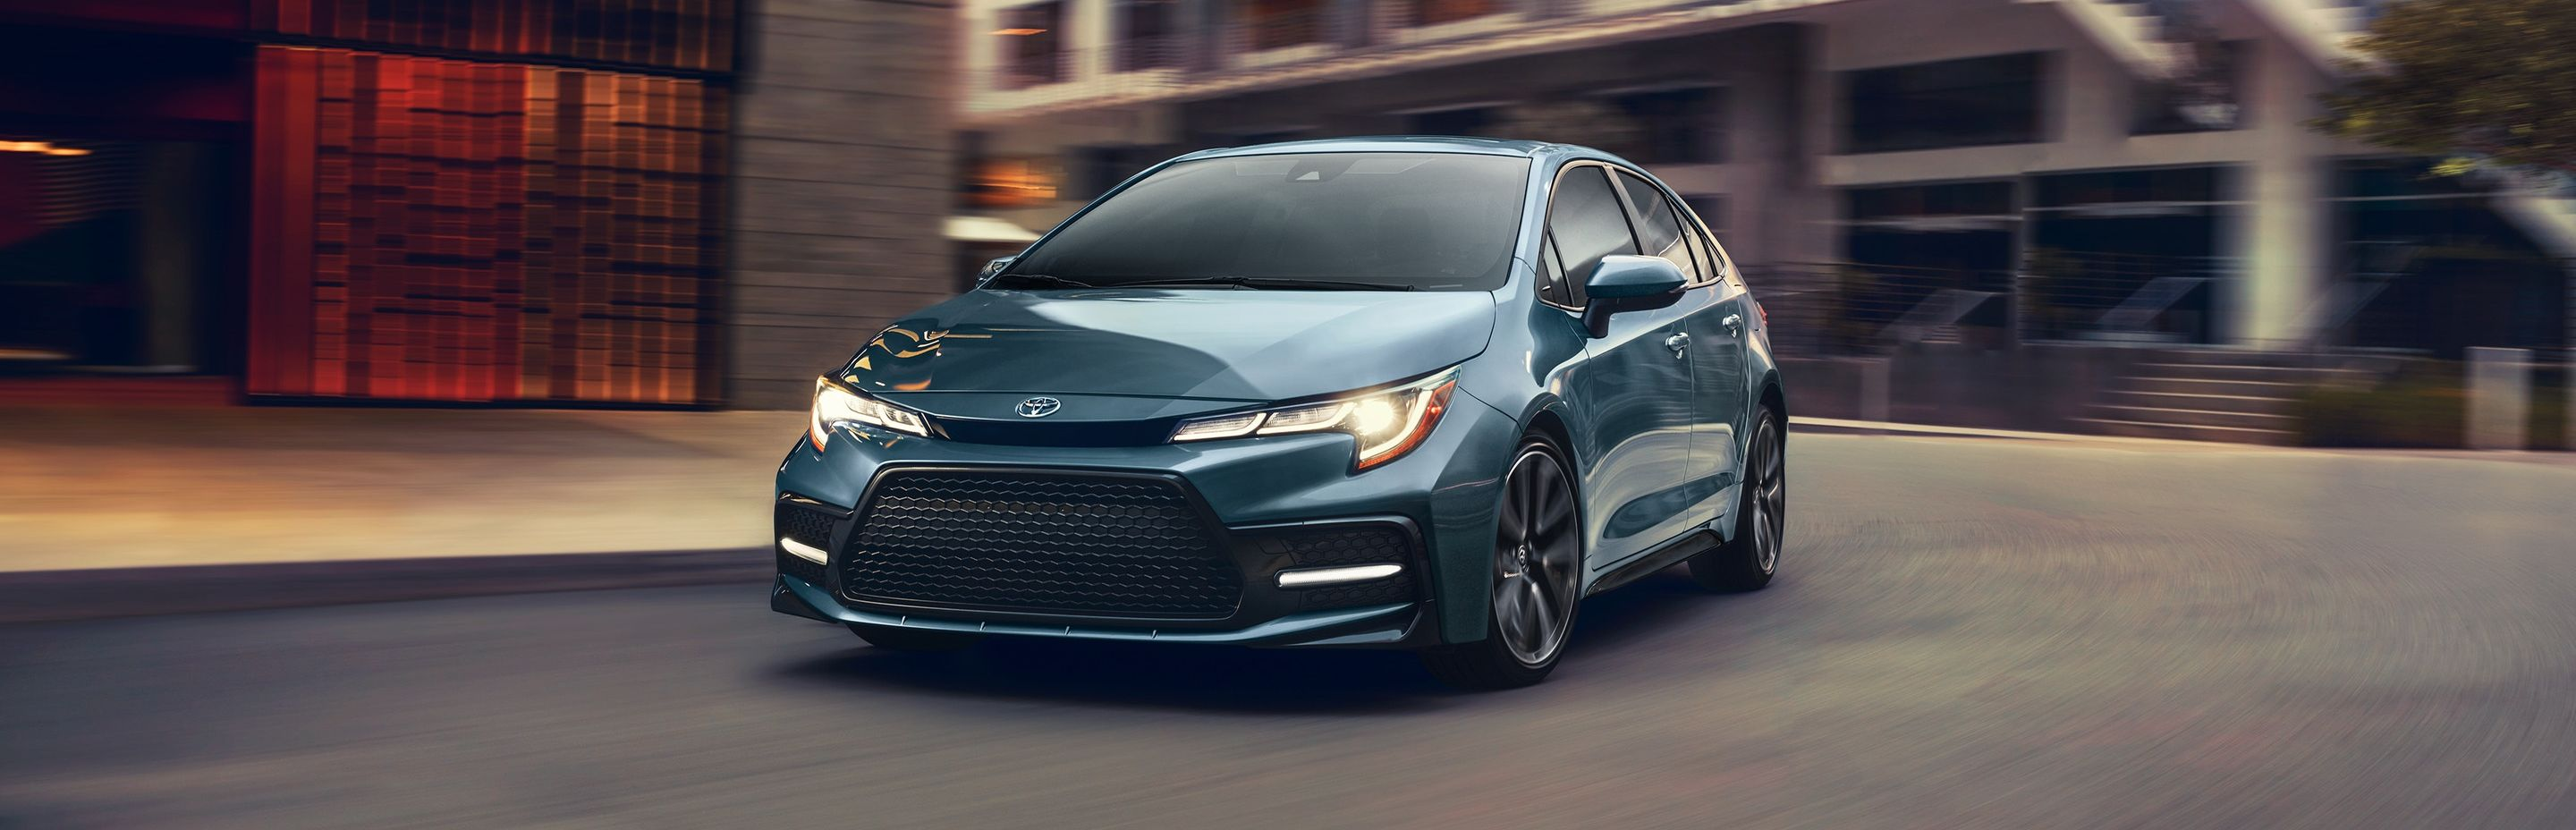 2020 Toyota Corolla for Sale near Elmhurst, IL